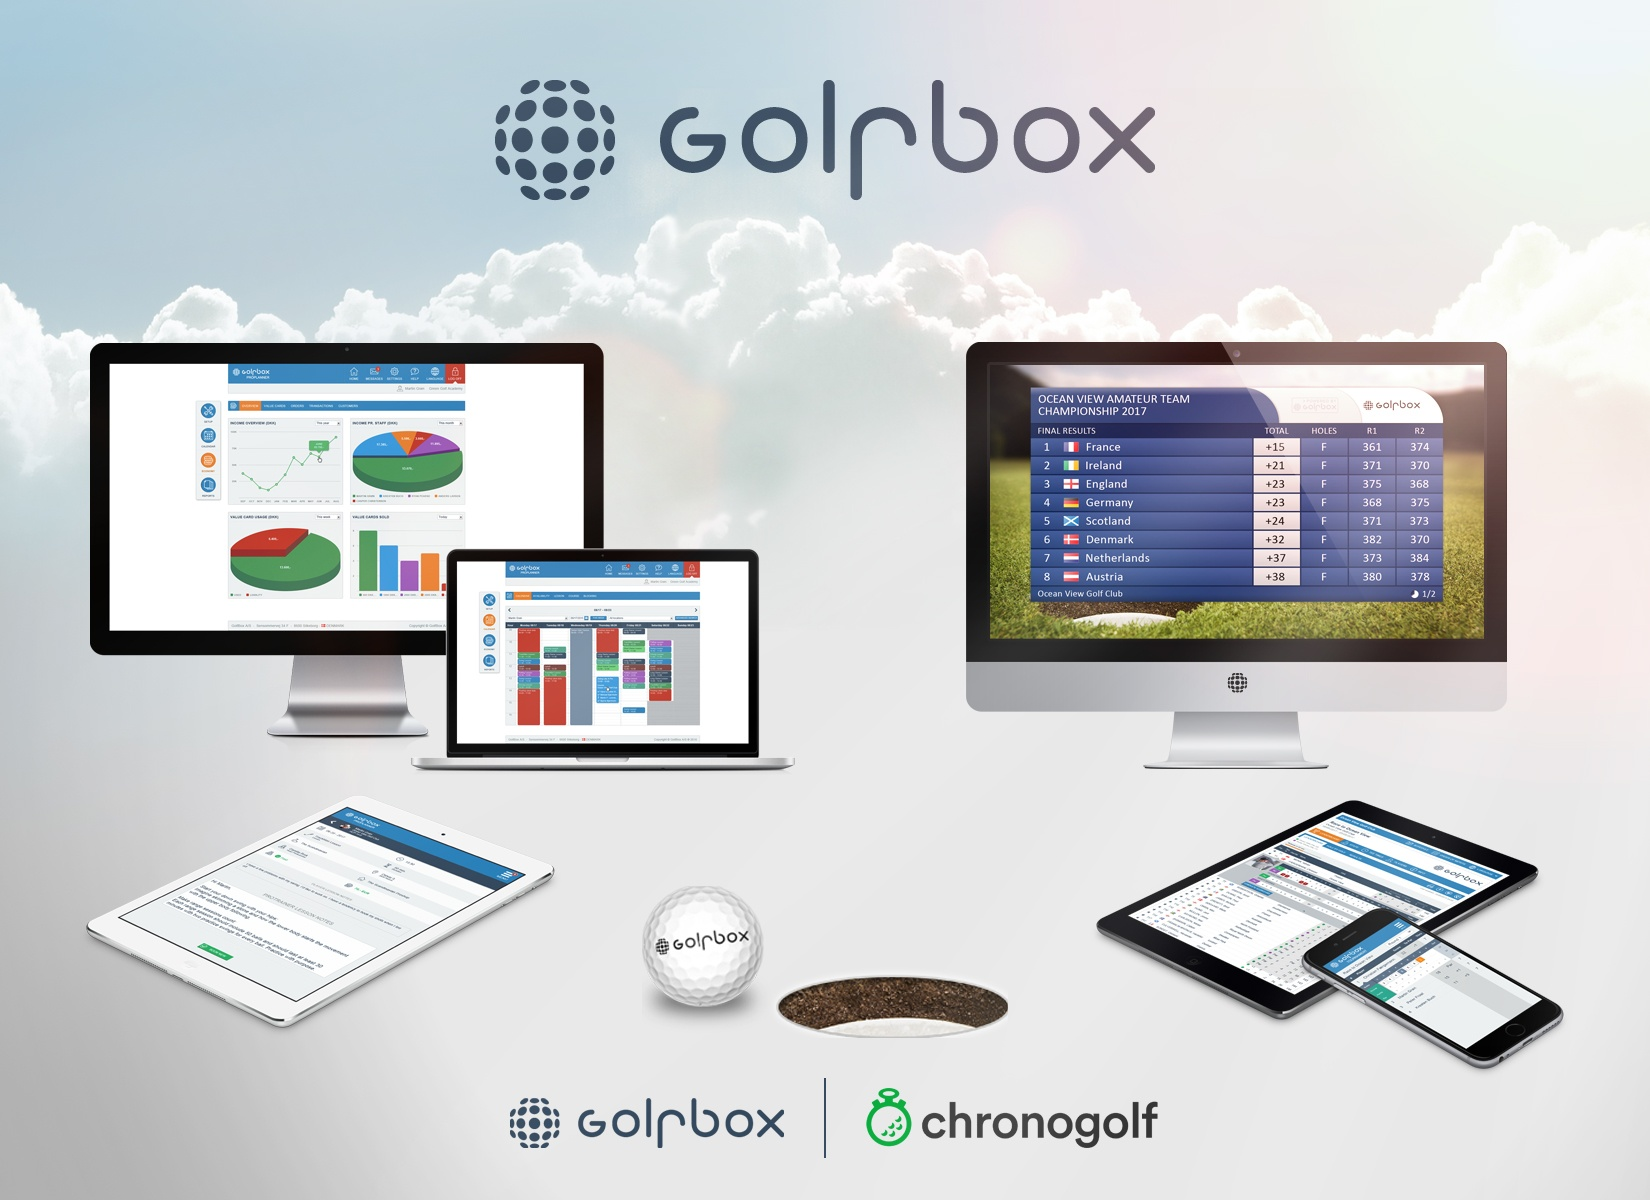 Chronogolf finalizes partnership with GolfBox A/S